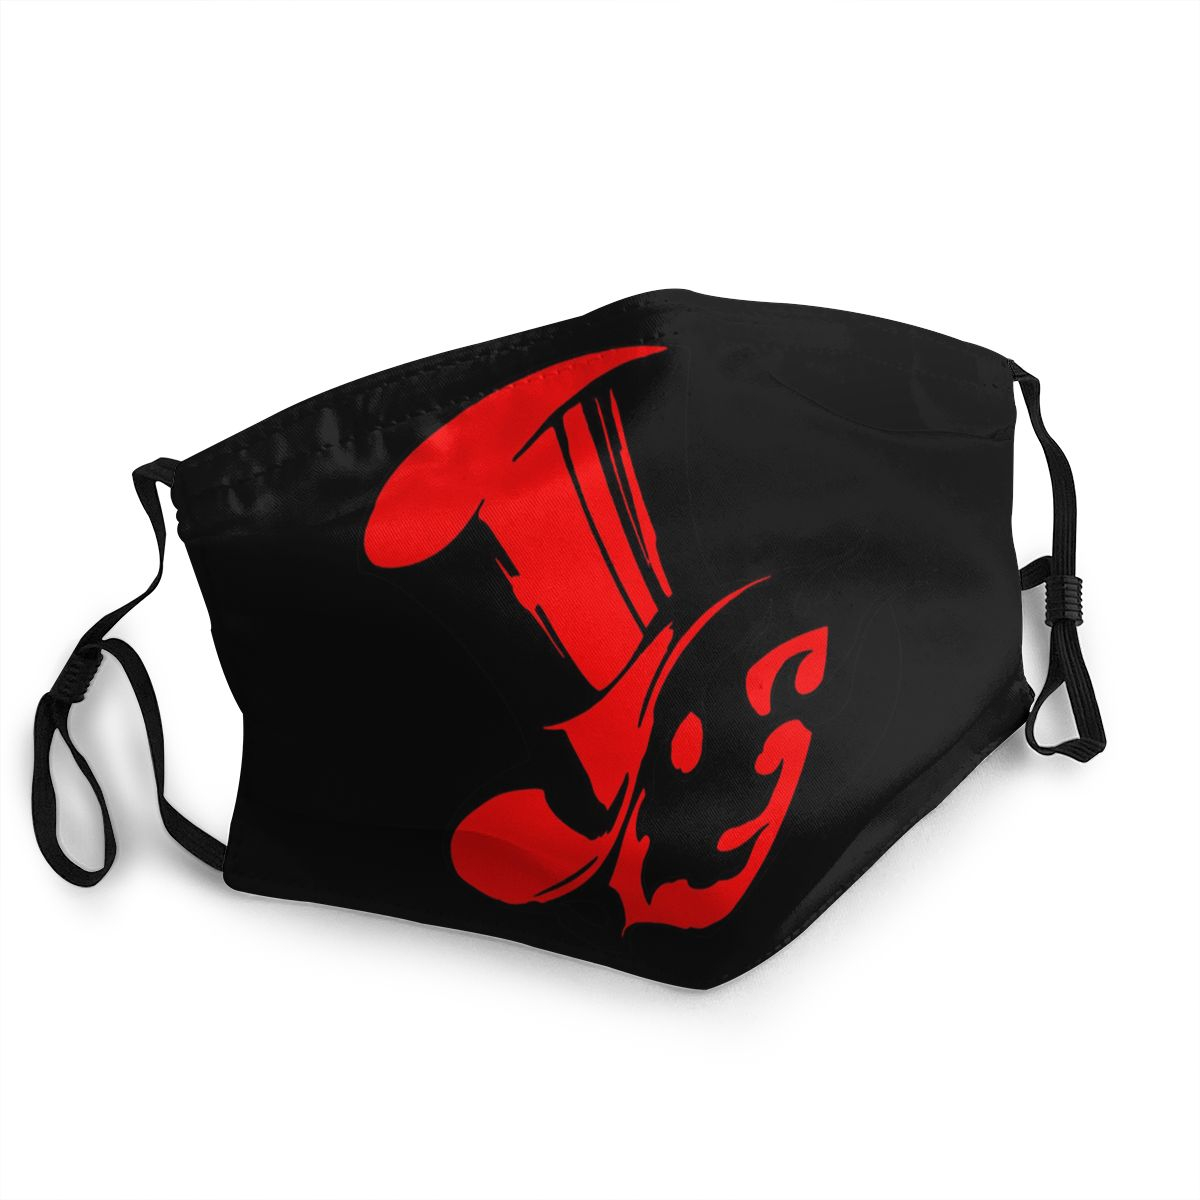 Phantom Thieves Hat Mouth Face Mask Persona 5 Anti Haze Protection